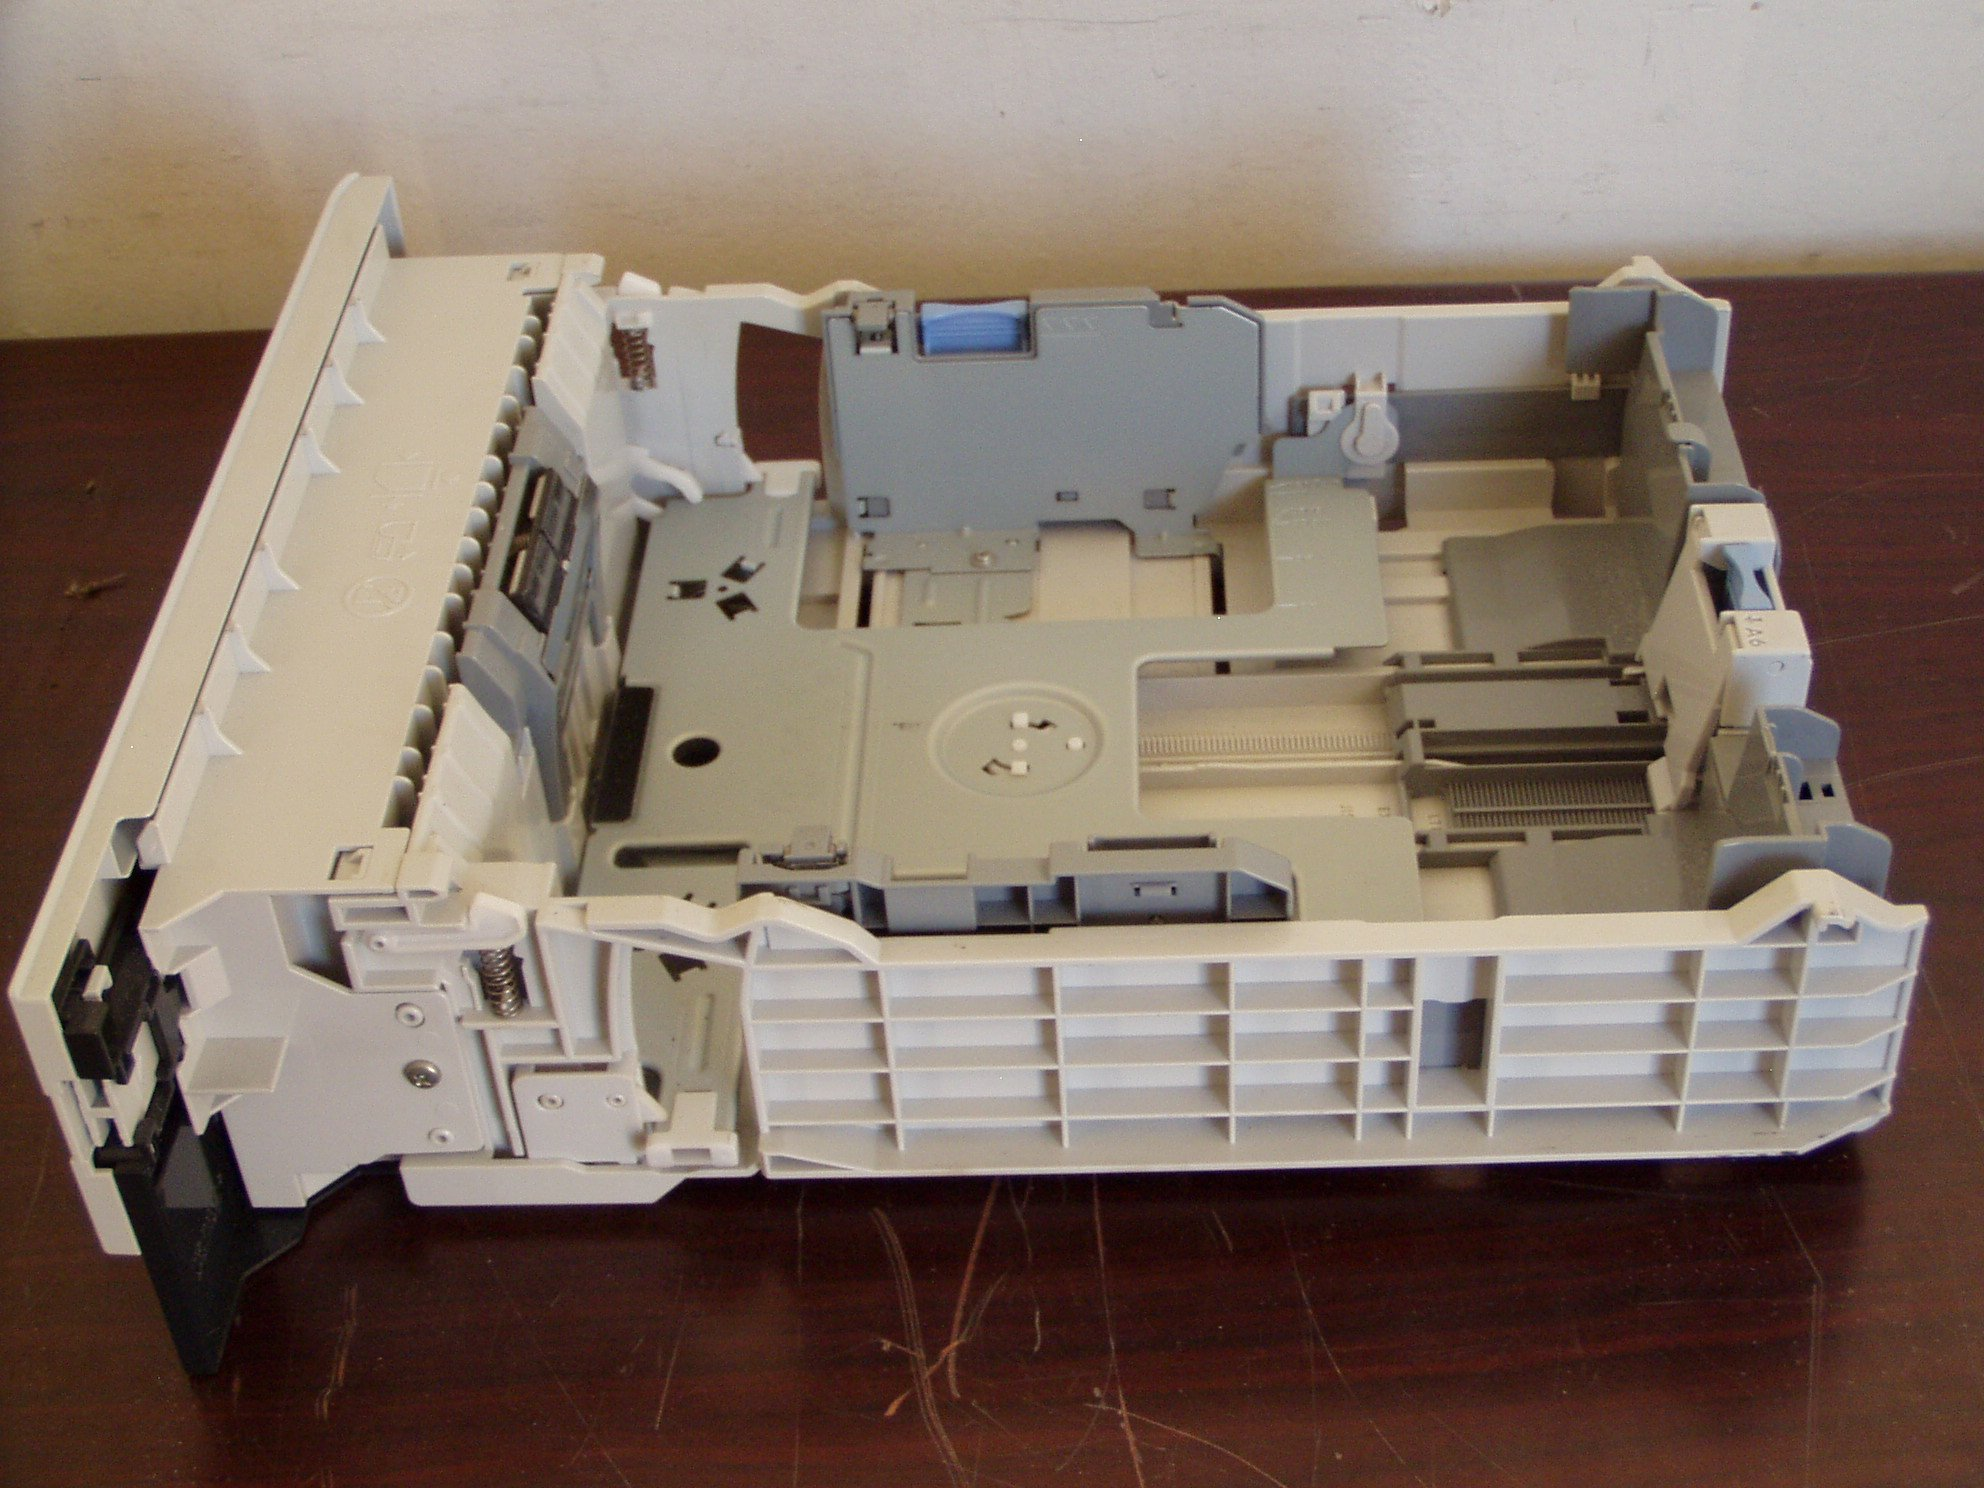 HP RM1-6279 500 Sheet Paper Tray Cassette For HP P3015, M525, M521 Printers by HP (Image #3)